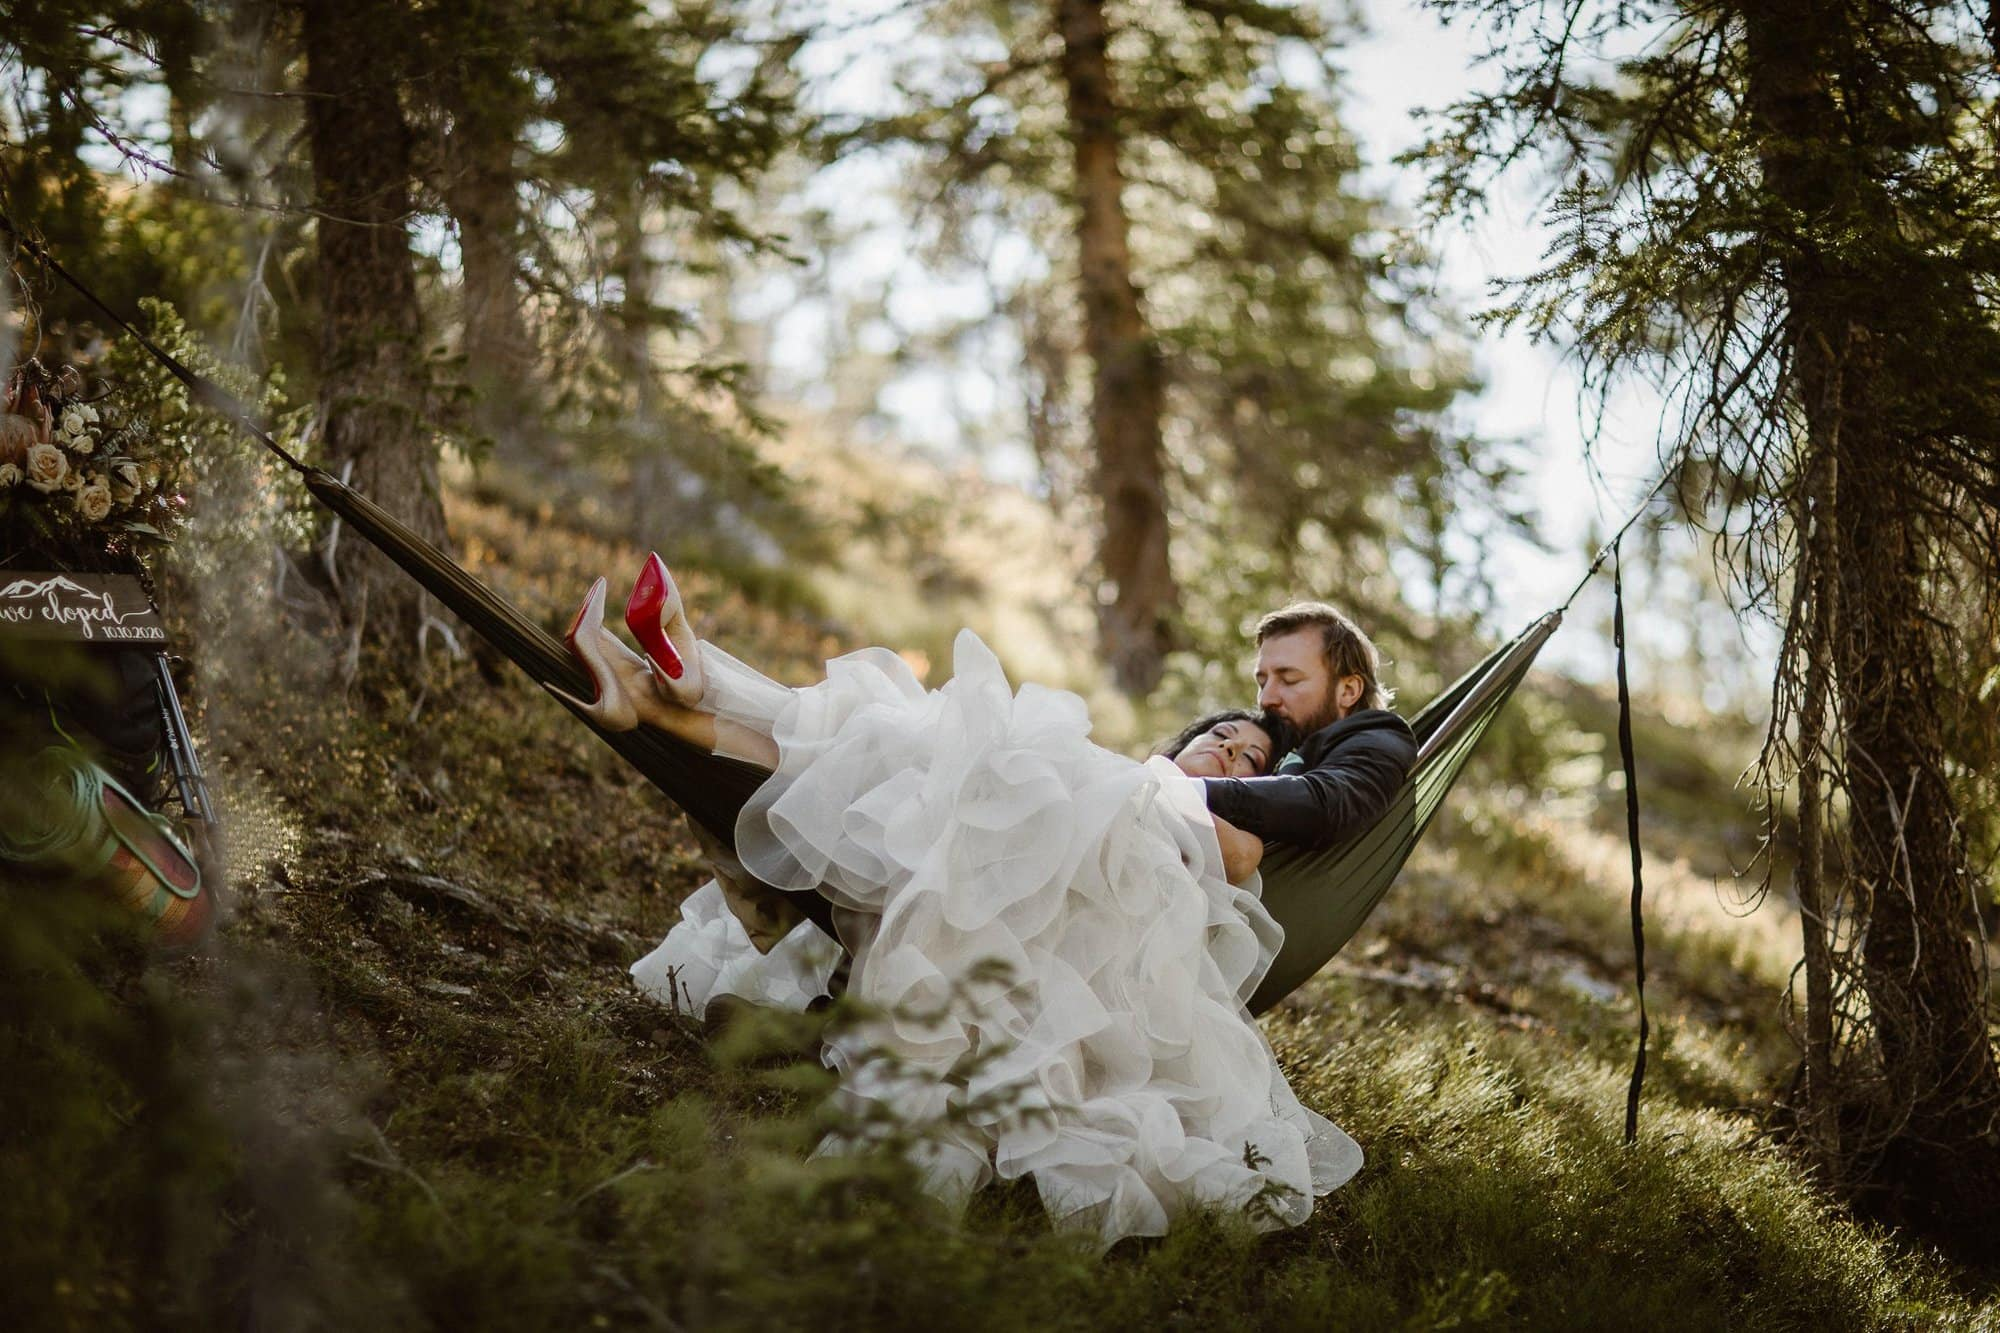 Hammocking on ENO after an adventure wedding hike. Best day of our life. Justyna E Butler Photography, Colorado Elopement Photographers, ADVENTURE ELOPEMENTS AND INTIMATE WEDDINGS | Colorado + Beyond COLORADO MOUNTAIN WEDDINGS FOR NATURE LOVERS | COLORADO ADVENTURE PHOTOGRAPHY | COLORADO ELOPEMENT PHOTOGRAPHER | DESTINATION ADVENTURE ELOPEMENTS + INTIMATE WEDDINGS FOR MADLY IN LOVE SOULS | ROCKY MOUNTAIN NATIONAL PARK COLORADO ELOPEMENT PHOTOGRAPHER | COLORADO ELOPEMENT PHOTOGRAPHERS